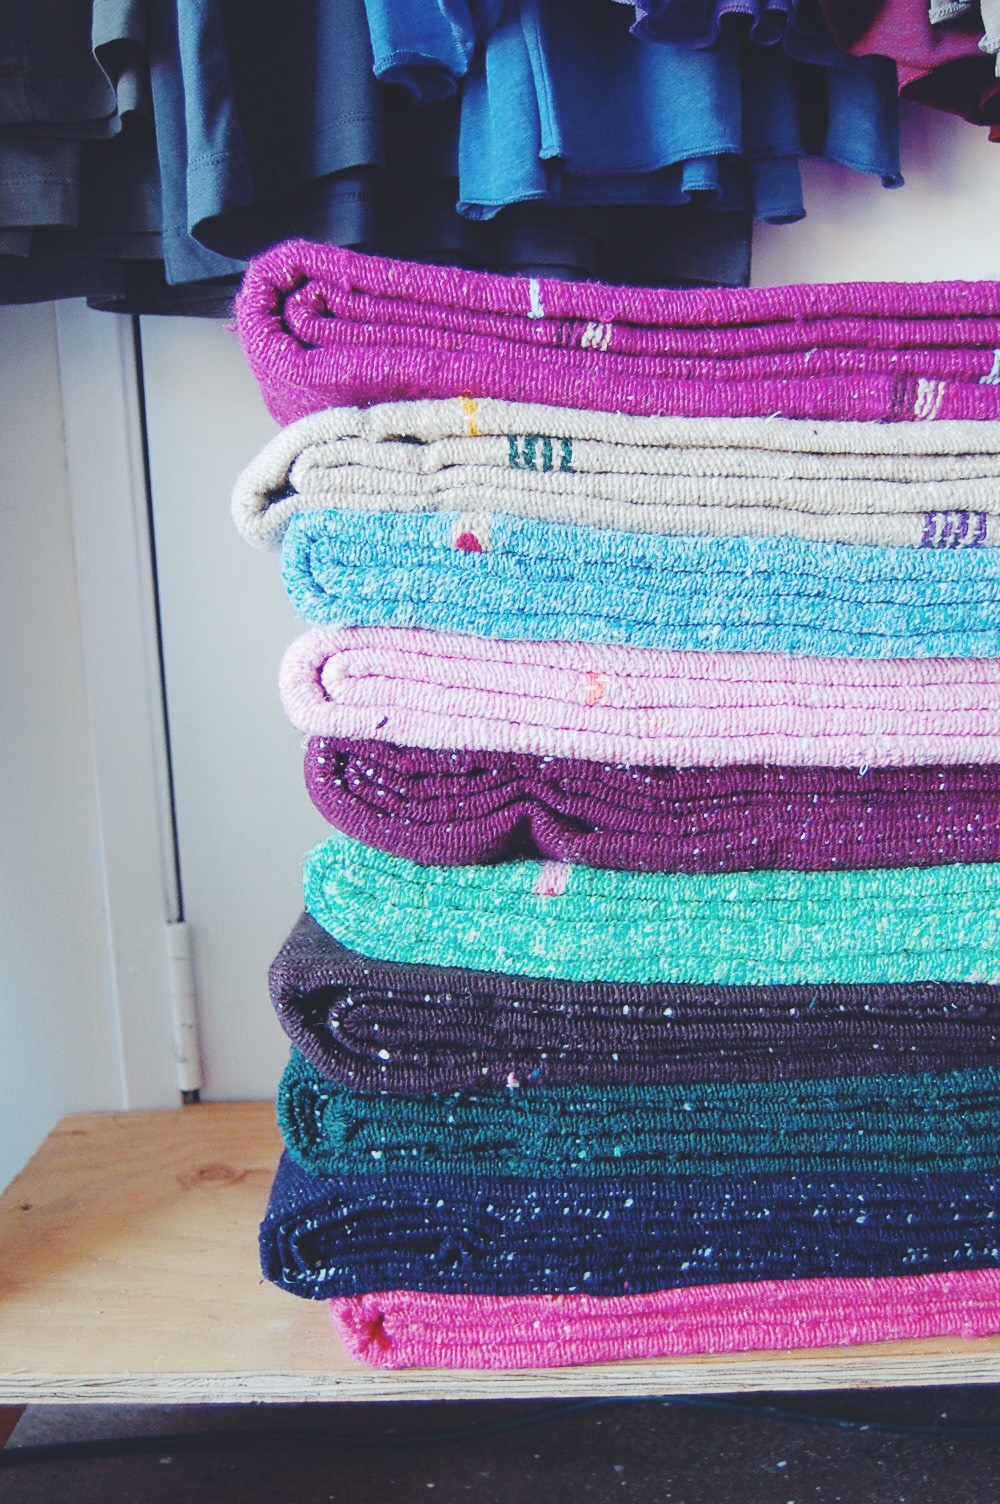 blankets close up.JPG